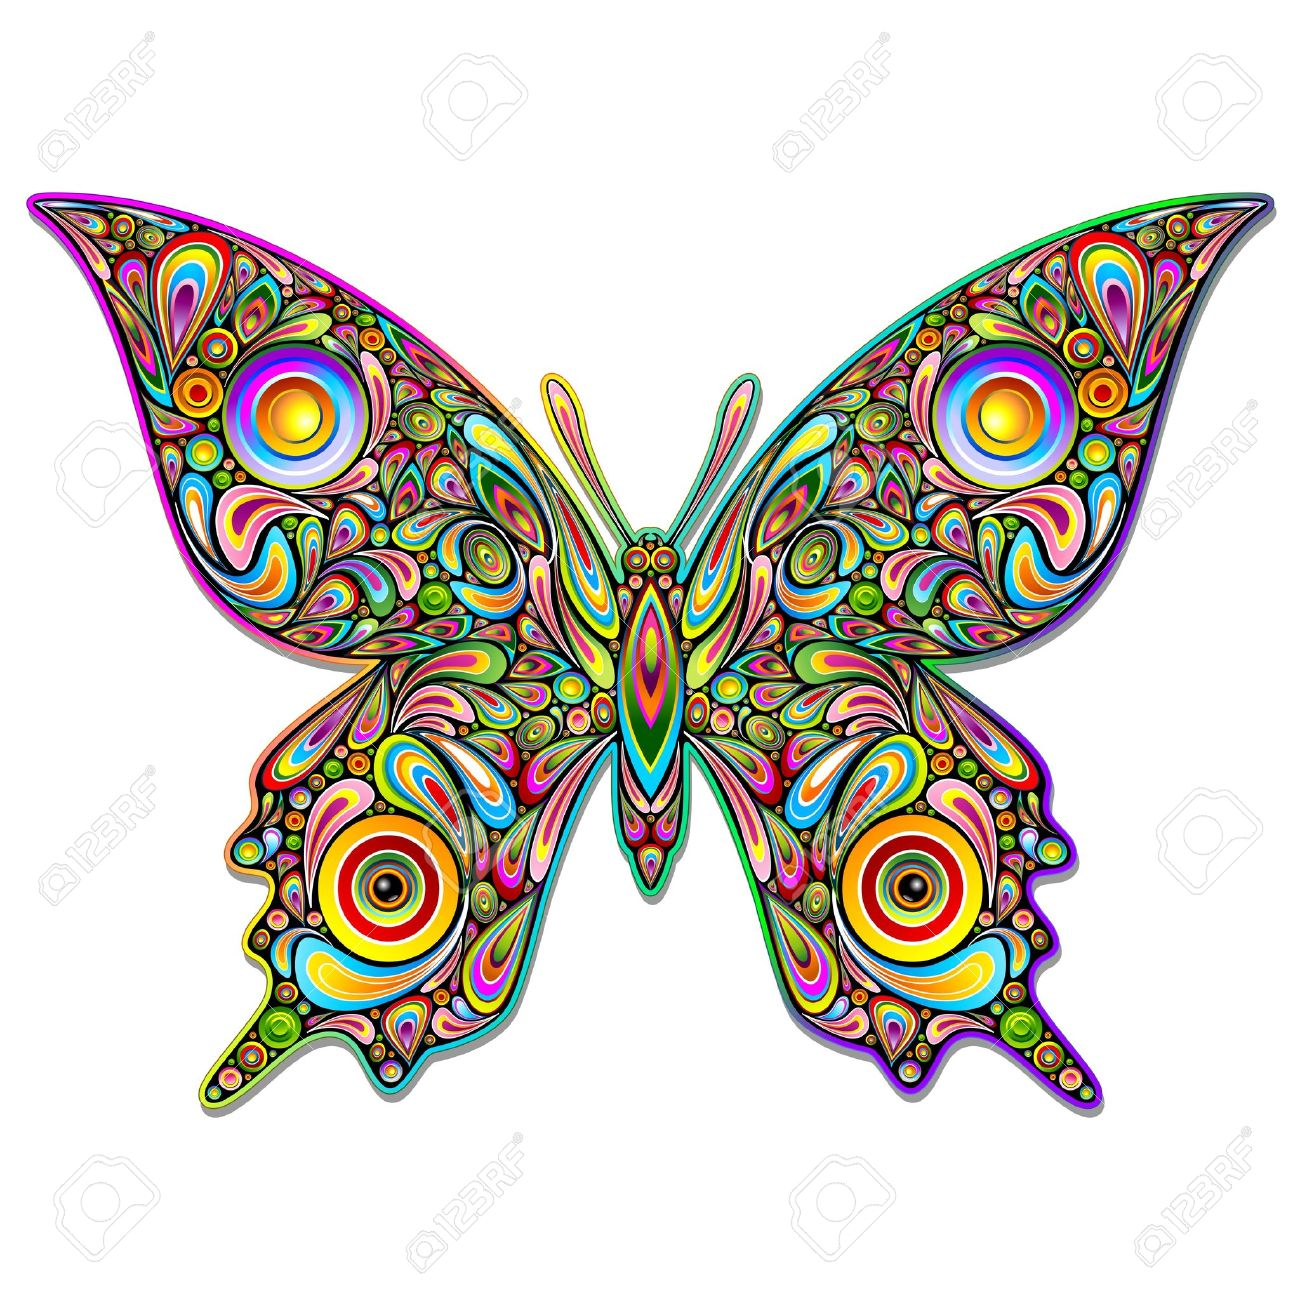 Butterfly Psychedelic Art Design - 17032548